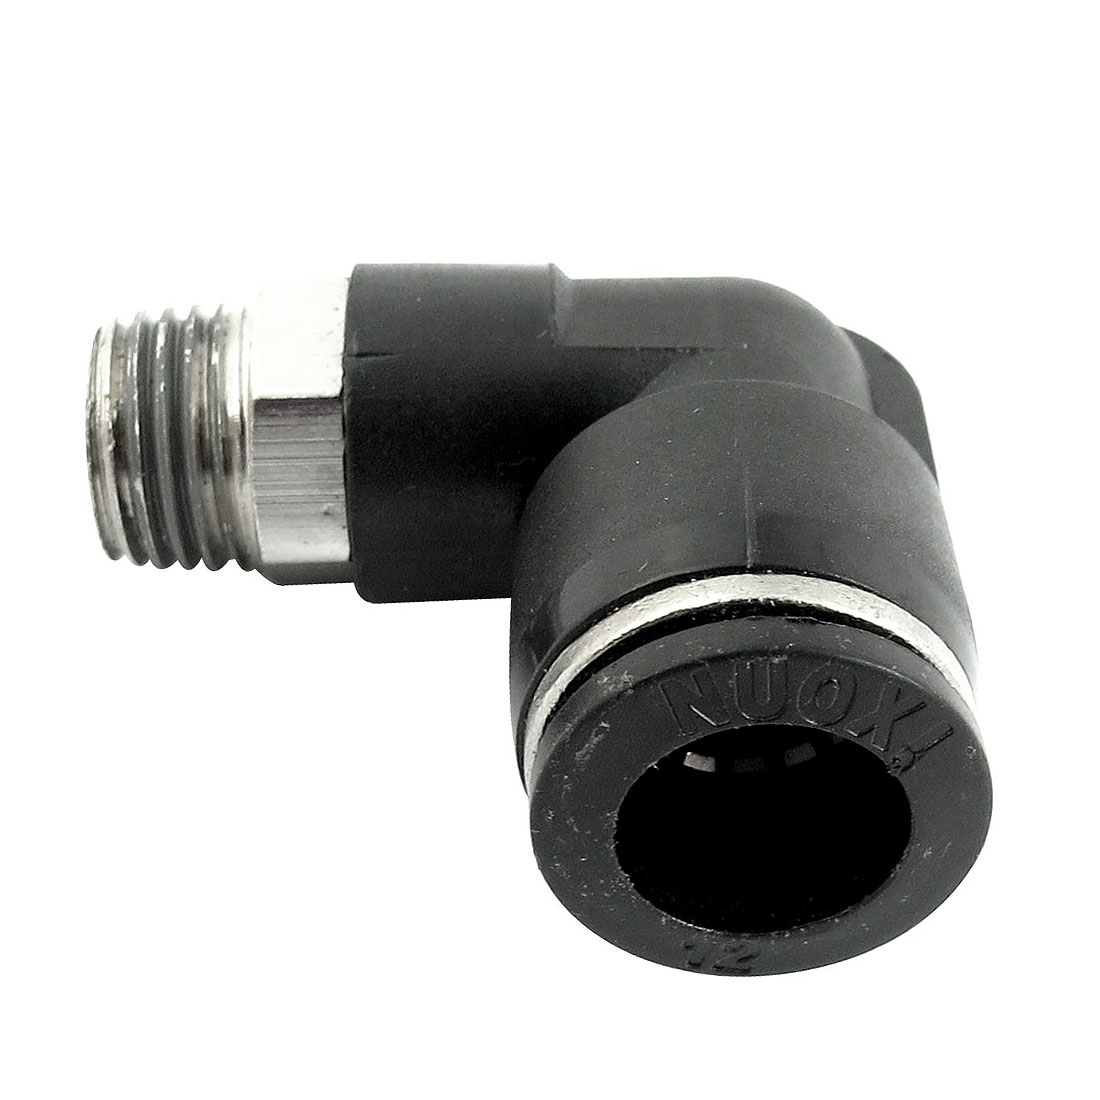 Air Pneumatic 1/4PT Male Thread to 12mm Push in Tube L Shaped Elbow Connector Quick Fitting